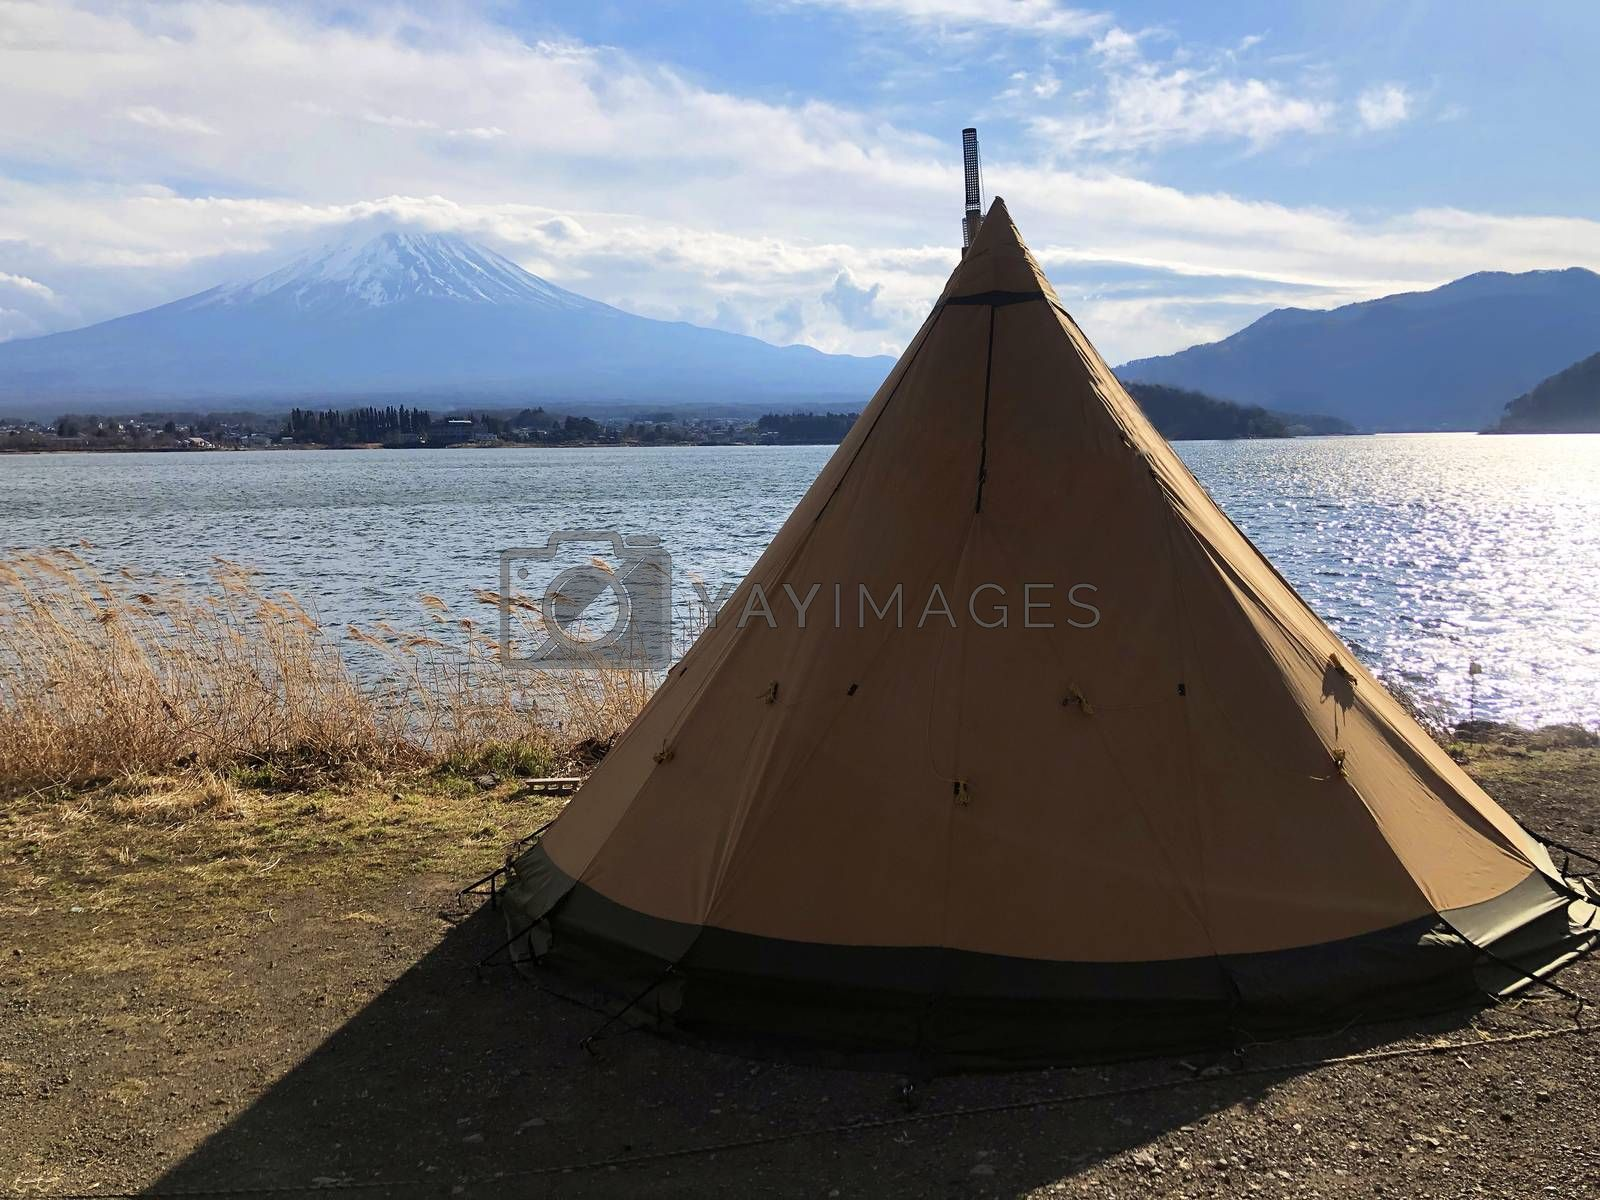 Camping field with mount Fuji view in Kawaguchiko lake at Japan